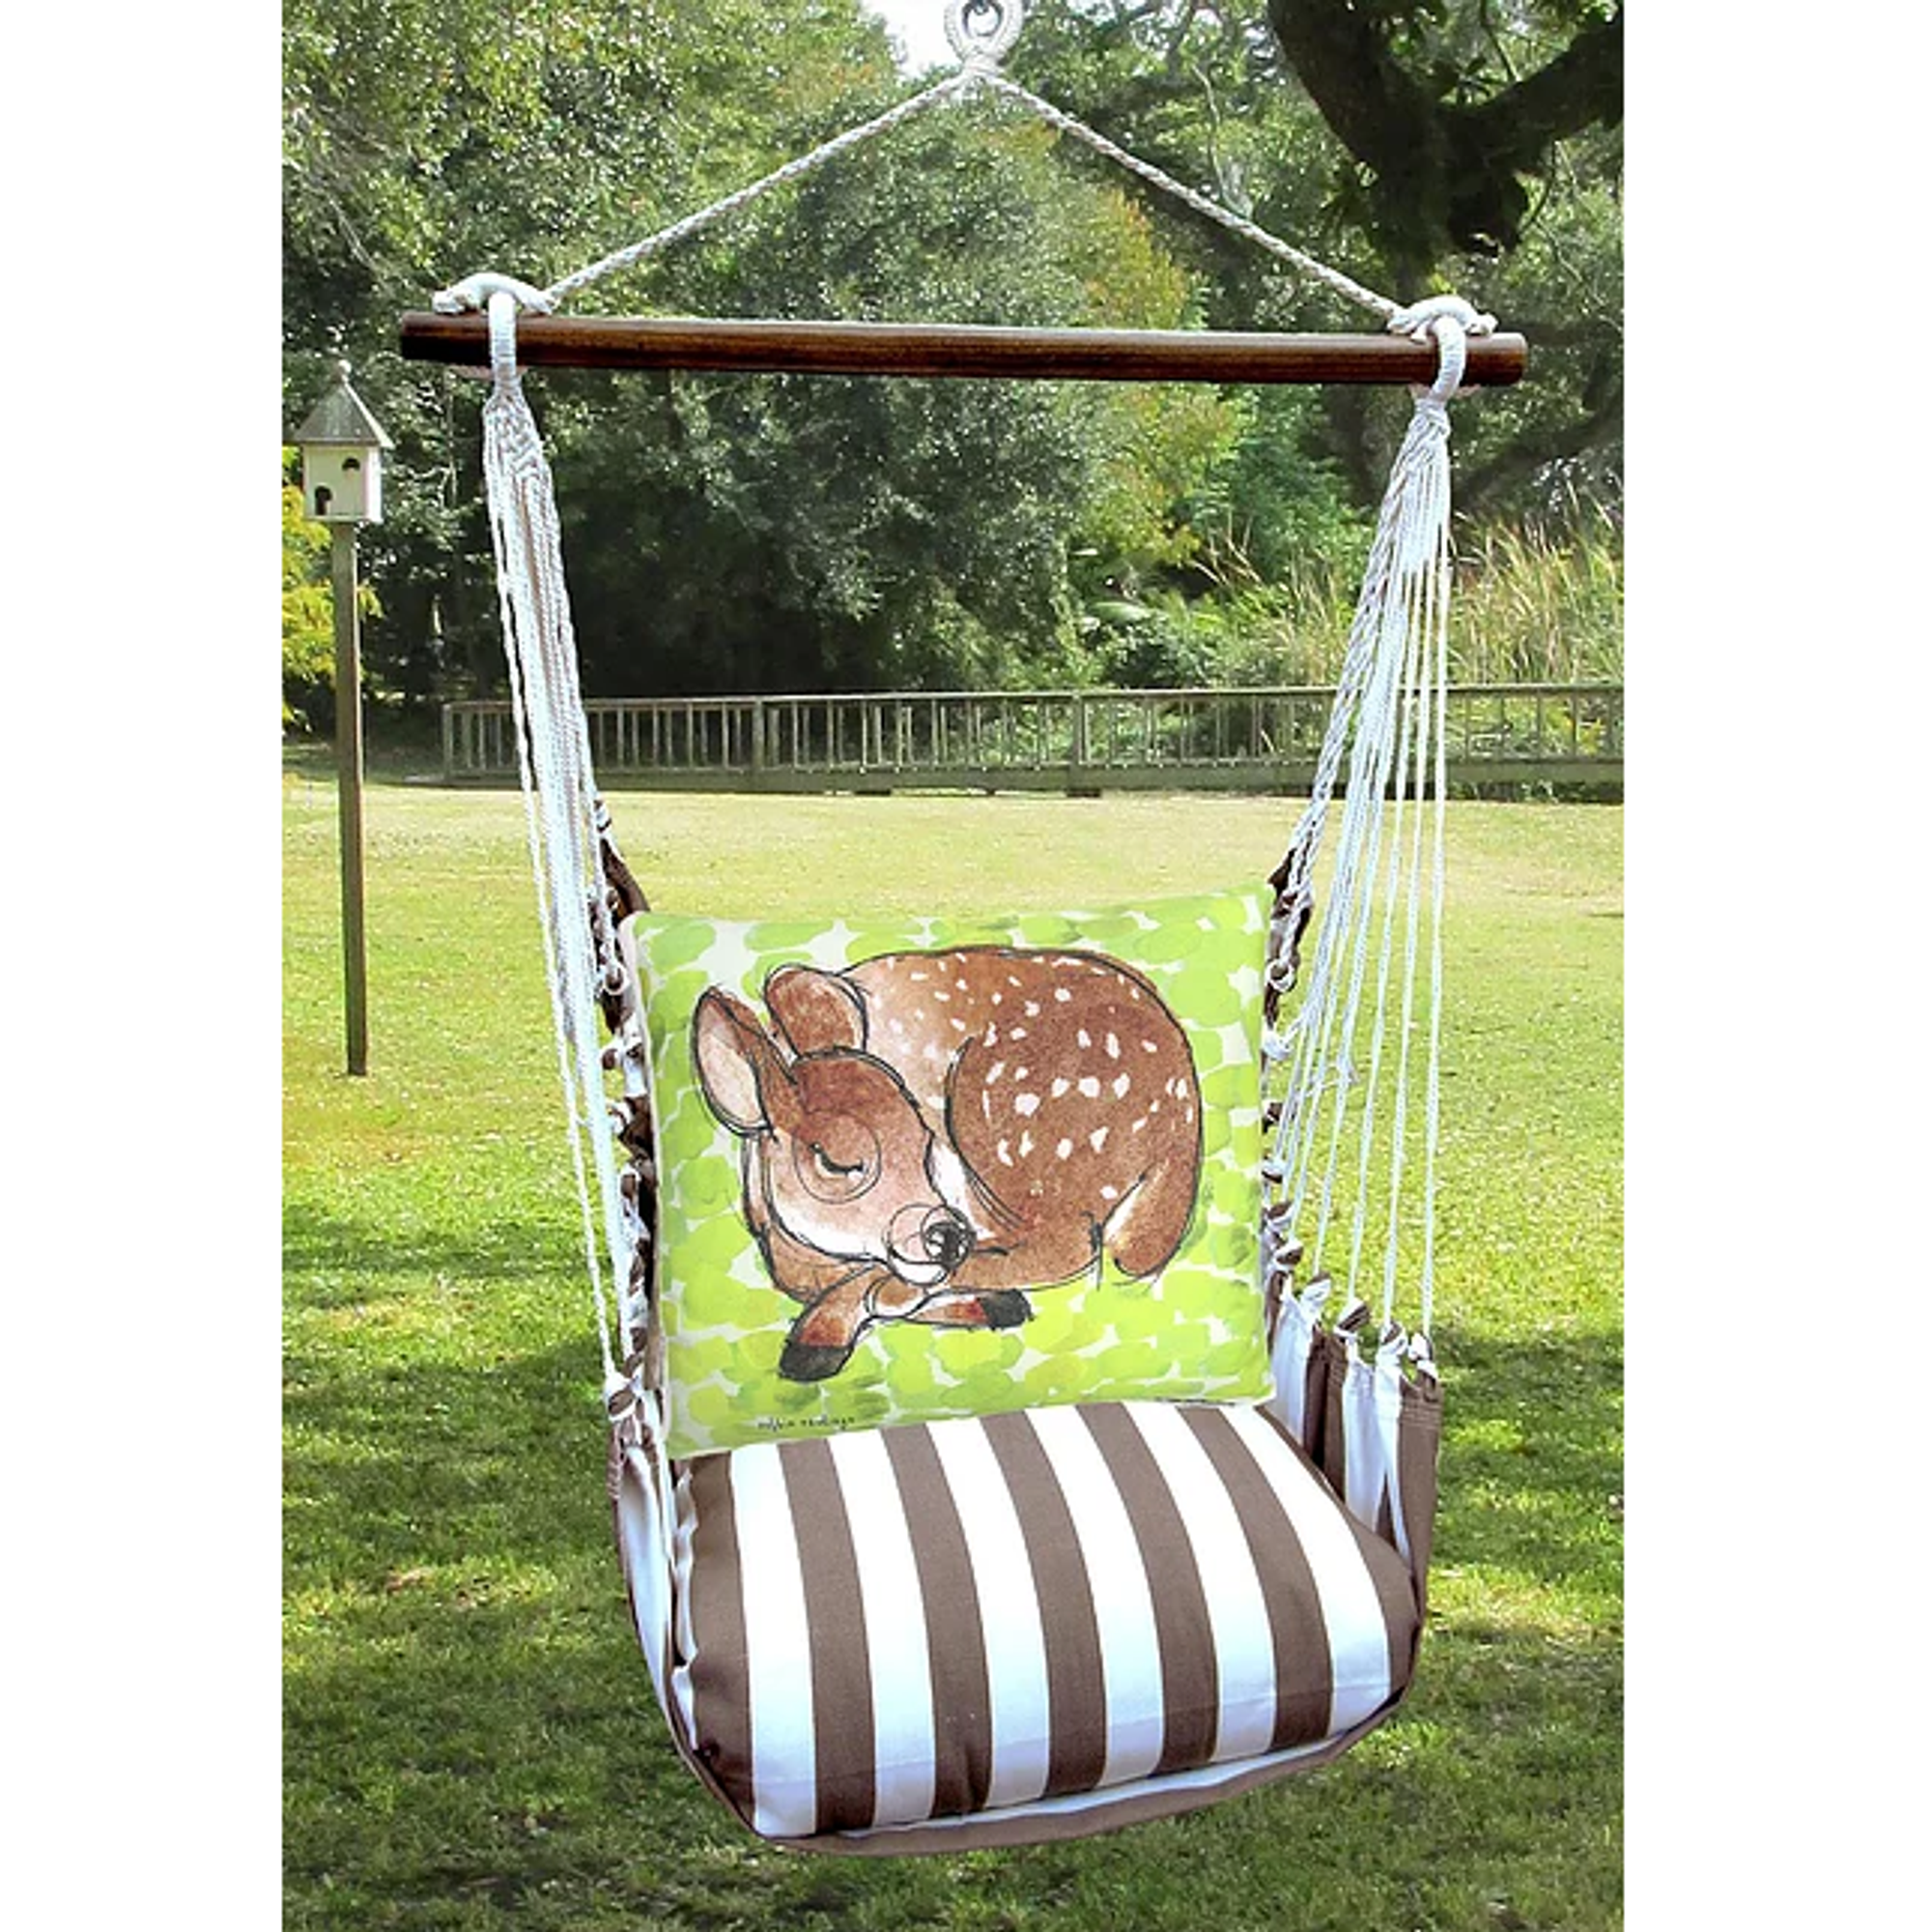 Sleeping Deer Hammock Chair Swing Striped Chocolate Magnolia Casual